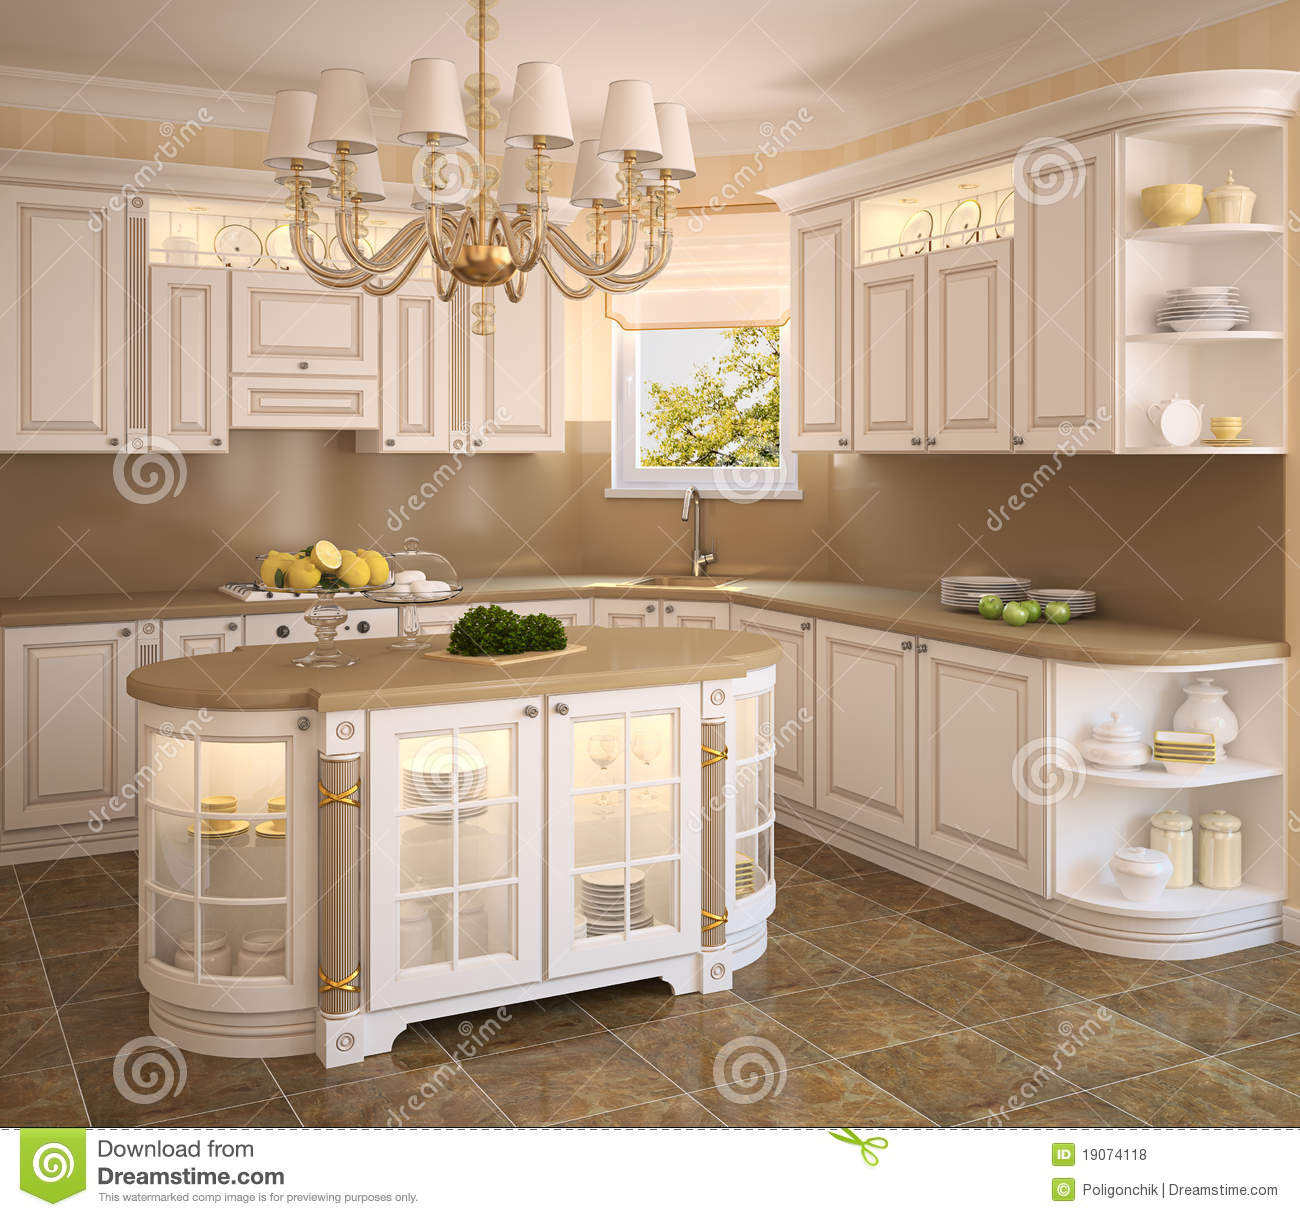 White Kitchen Cabinets In Stock: Royalty Free Stock Photos: Classic White Kitchen. Image